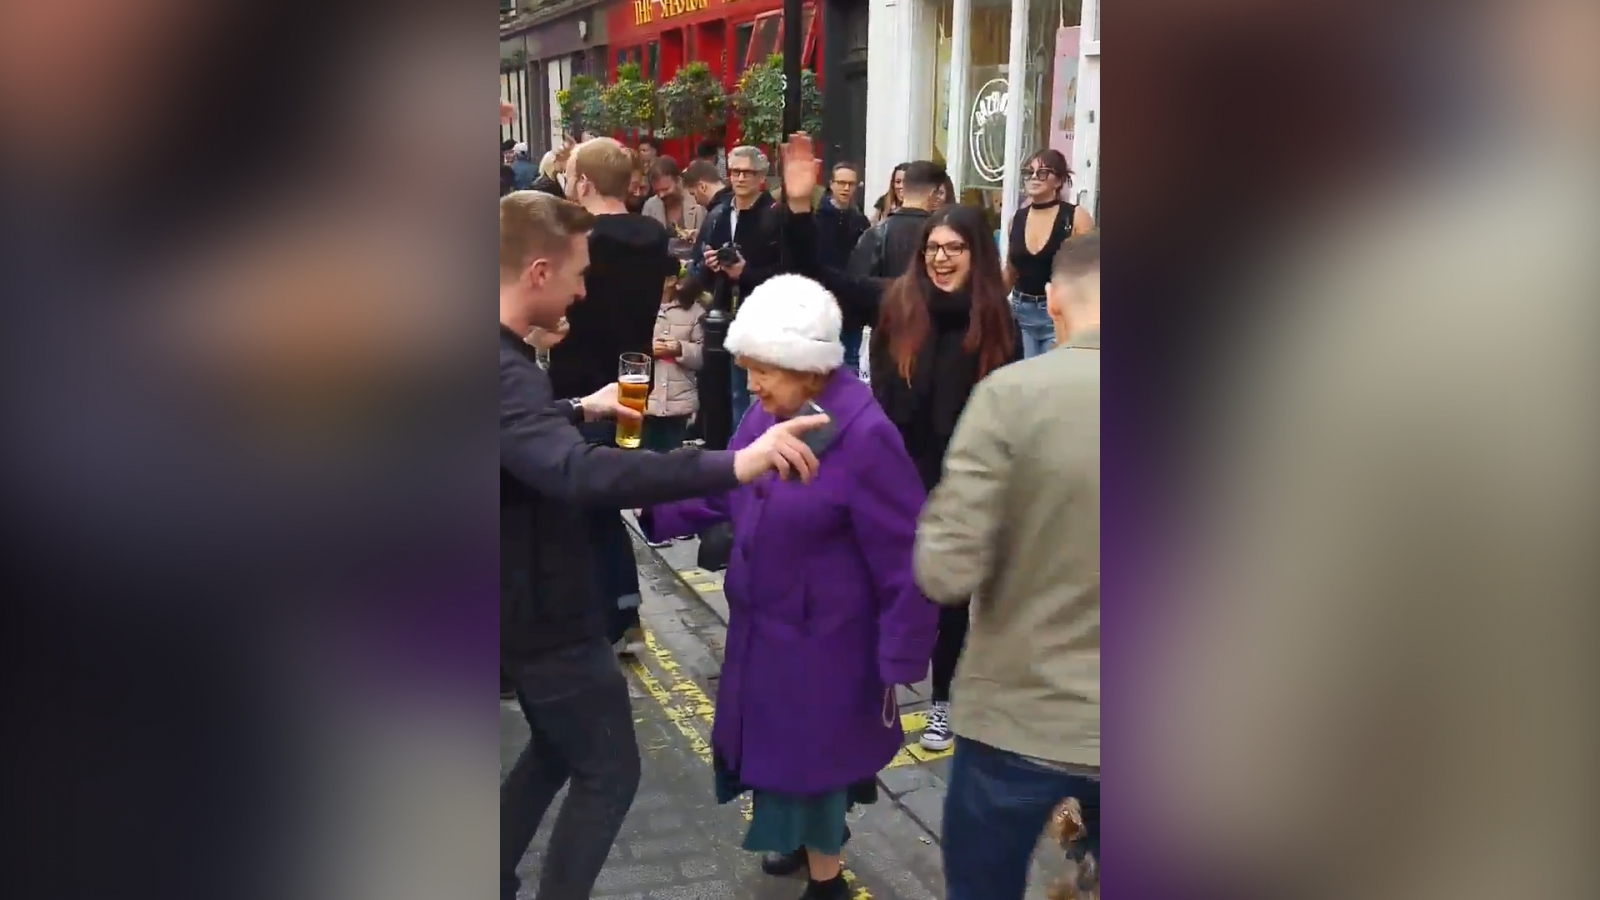 Woman proves age doesn't matter as she shows off her dance moves on Soho street